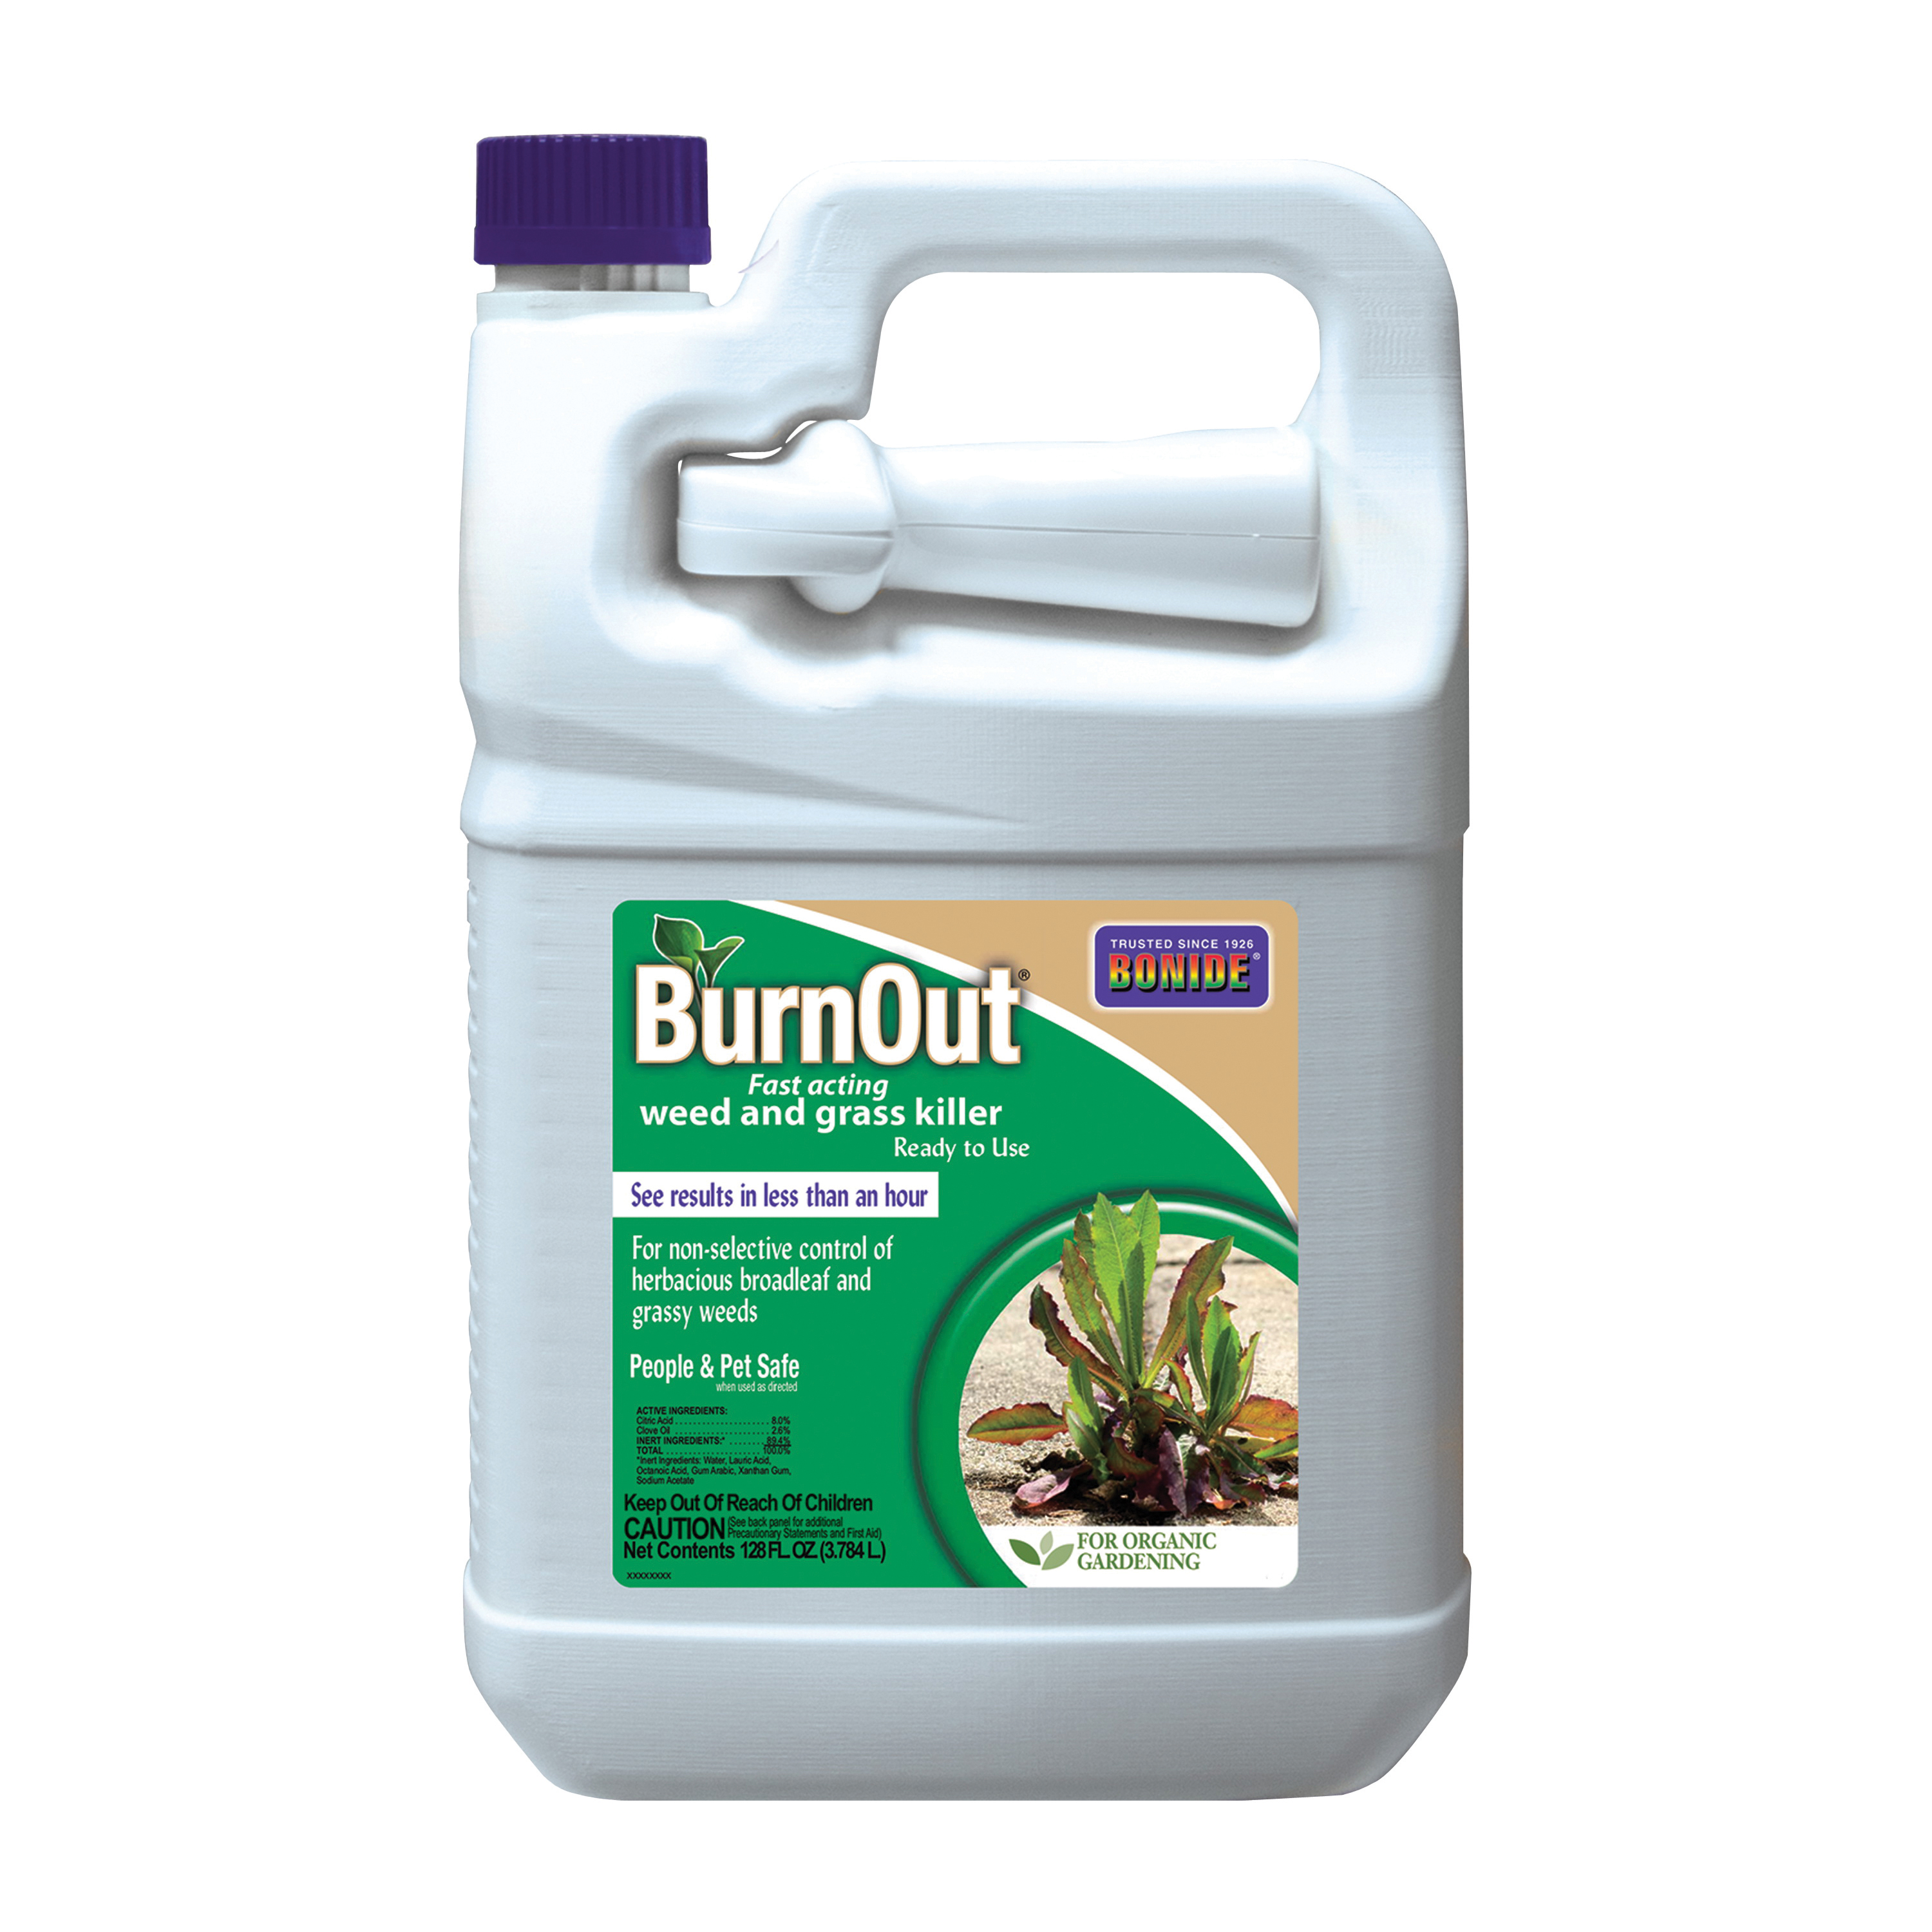 Picture of Bonide 7492 Weed and Grass Killer, Liquid, Light Yellow/White, 1 gal Package